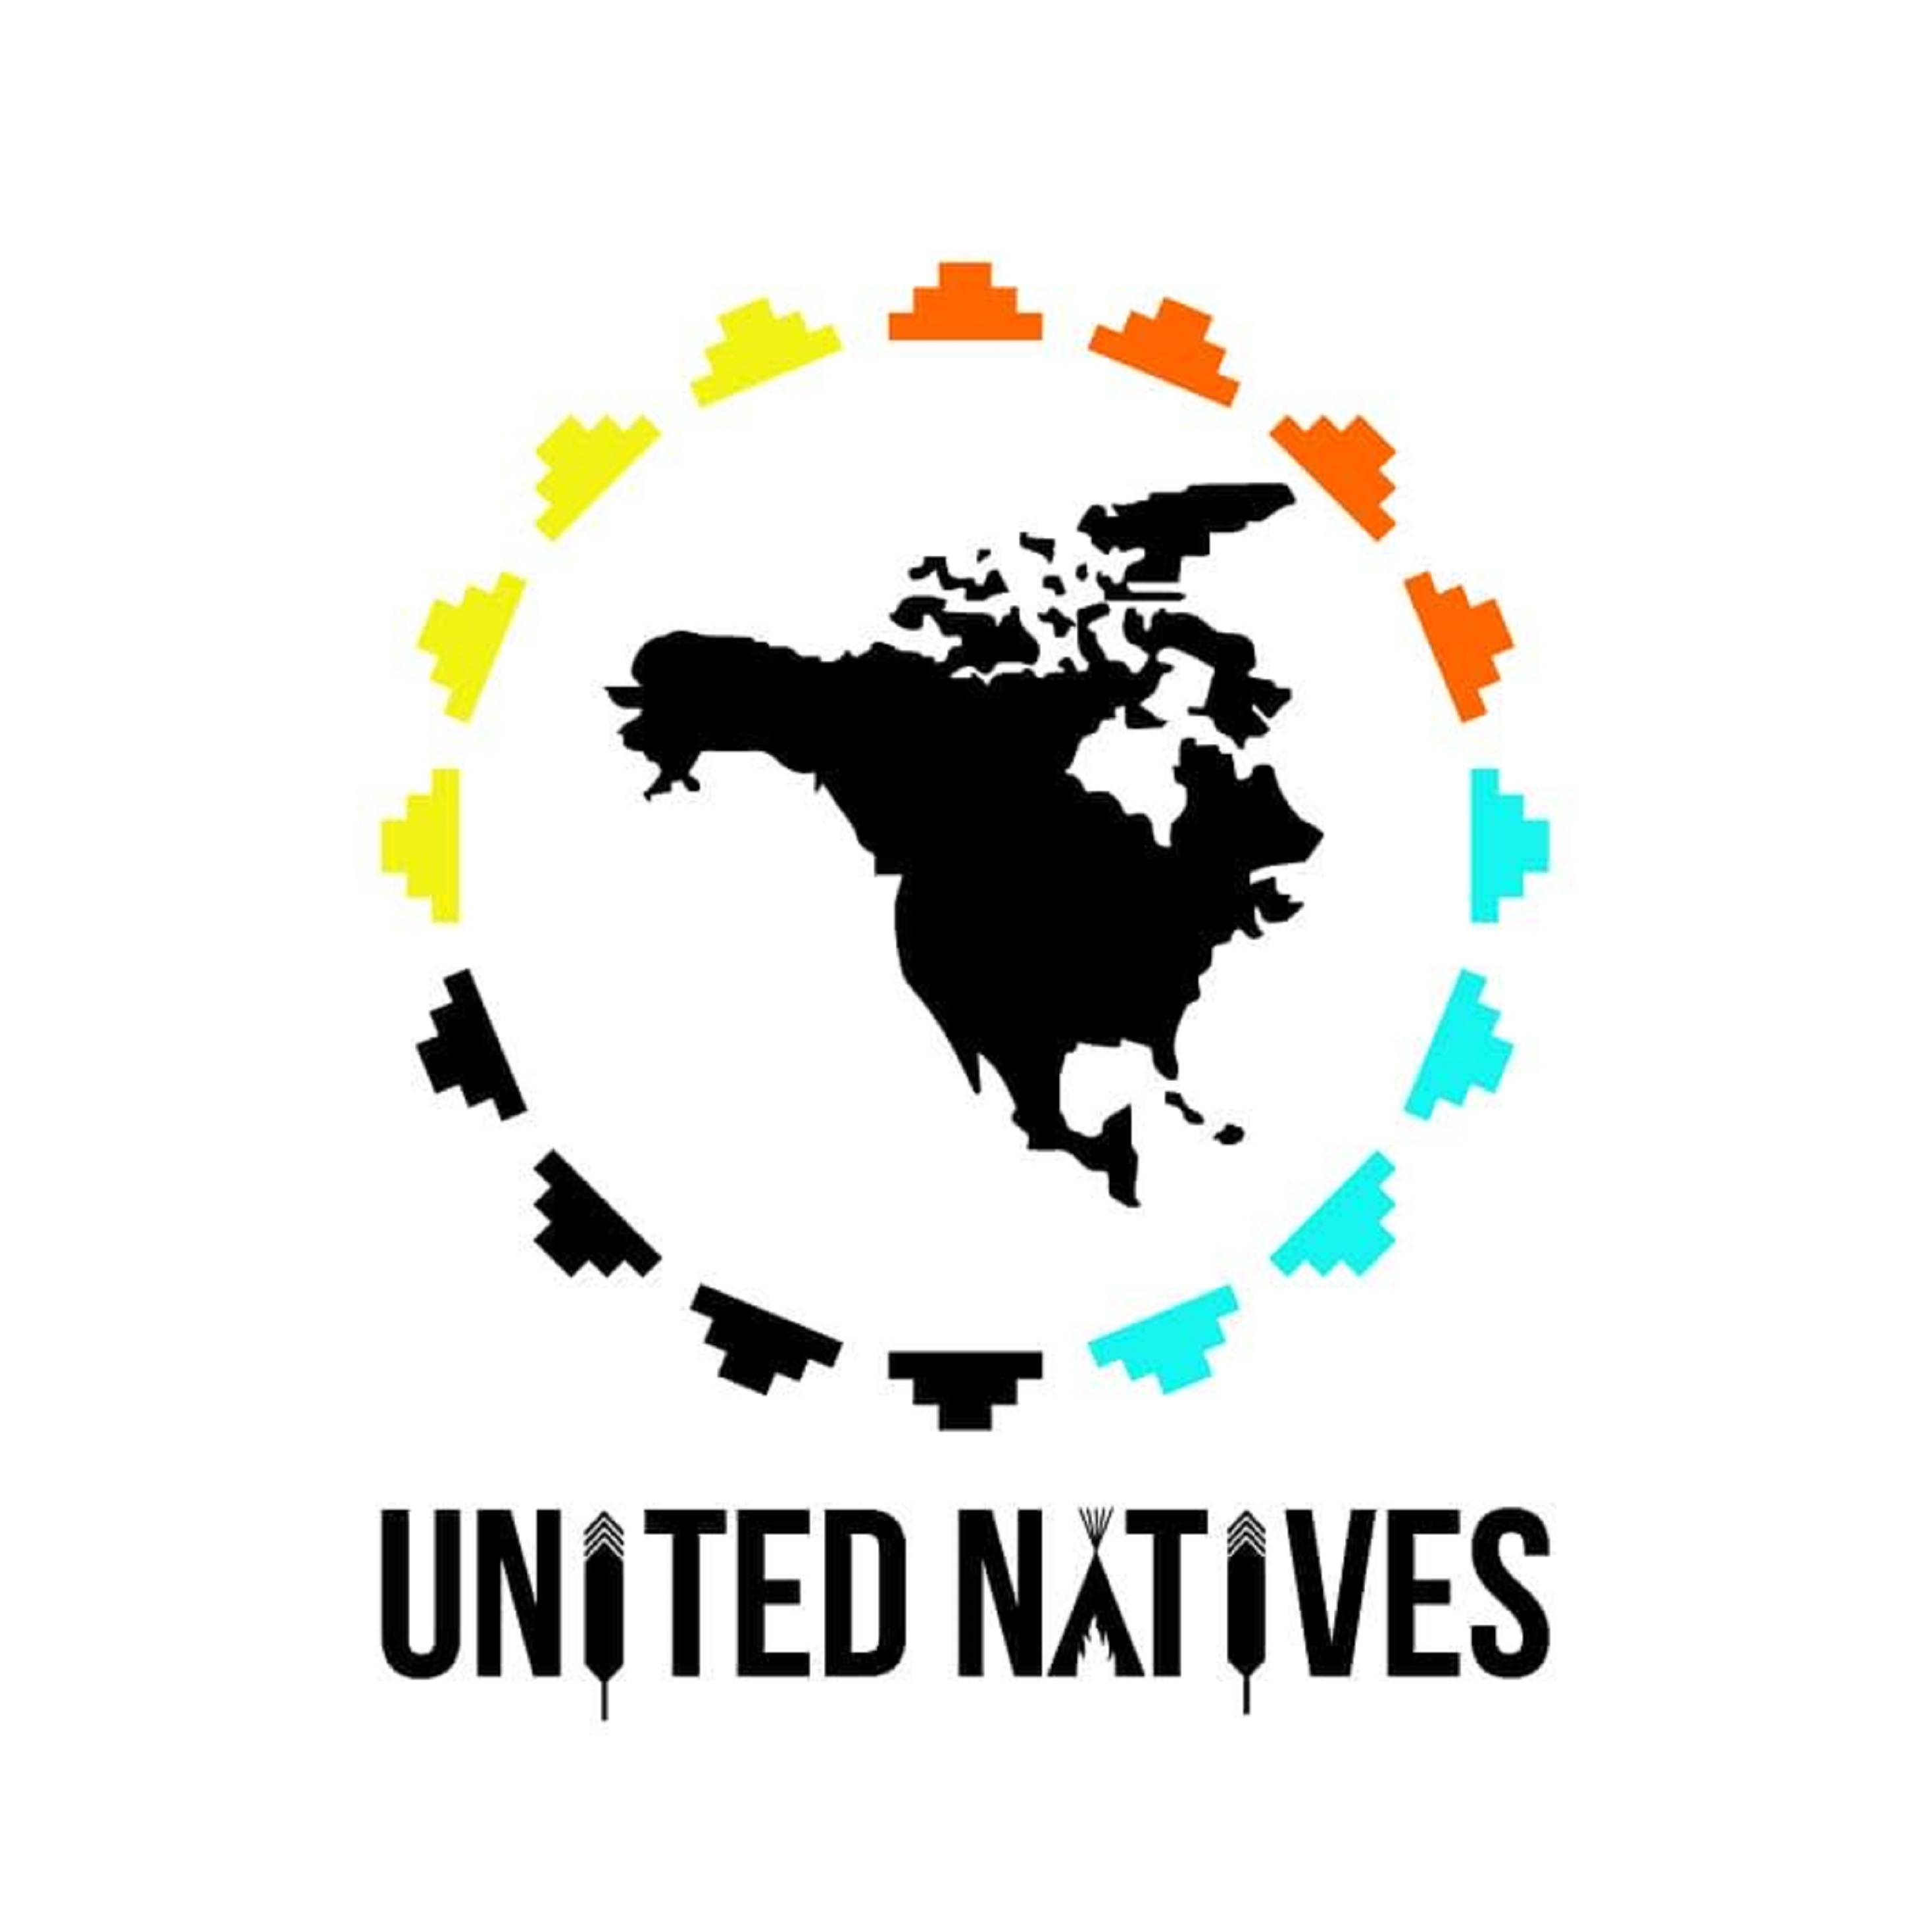 Lone Hawk Hats Family (Barry Gibb, Sheryl Crow, LP, Nils Lofgren, Chris Robinson & More) Supports United Natives & Navajo Nation Via Charity Auction & Raffle